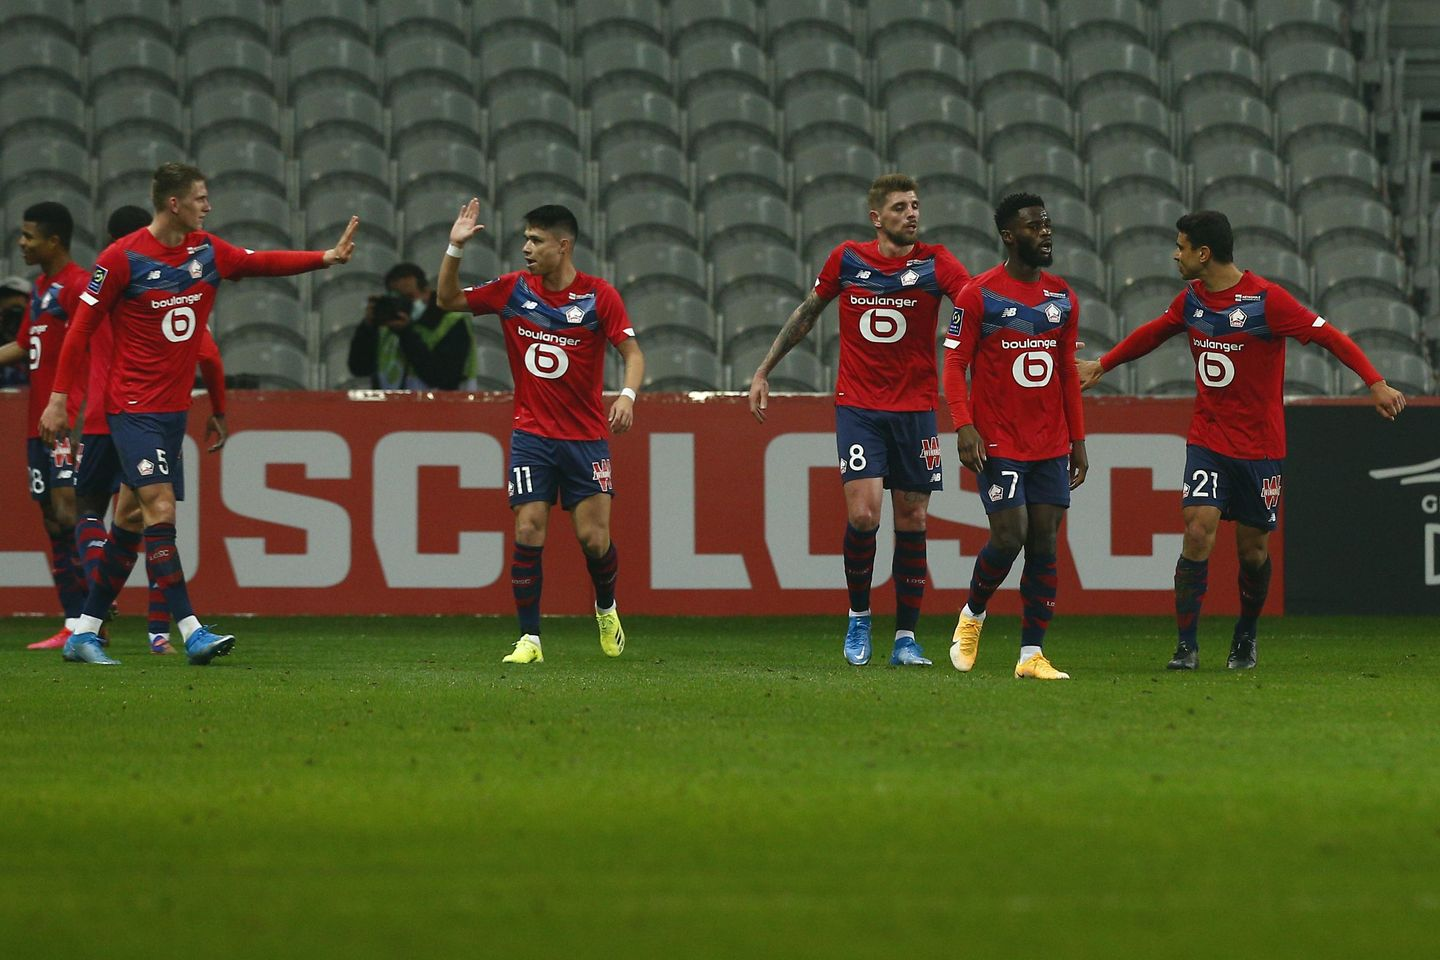 David scores 2 as Lille wins to stay two points clear of PSG